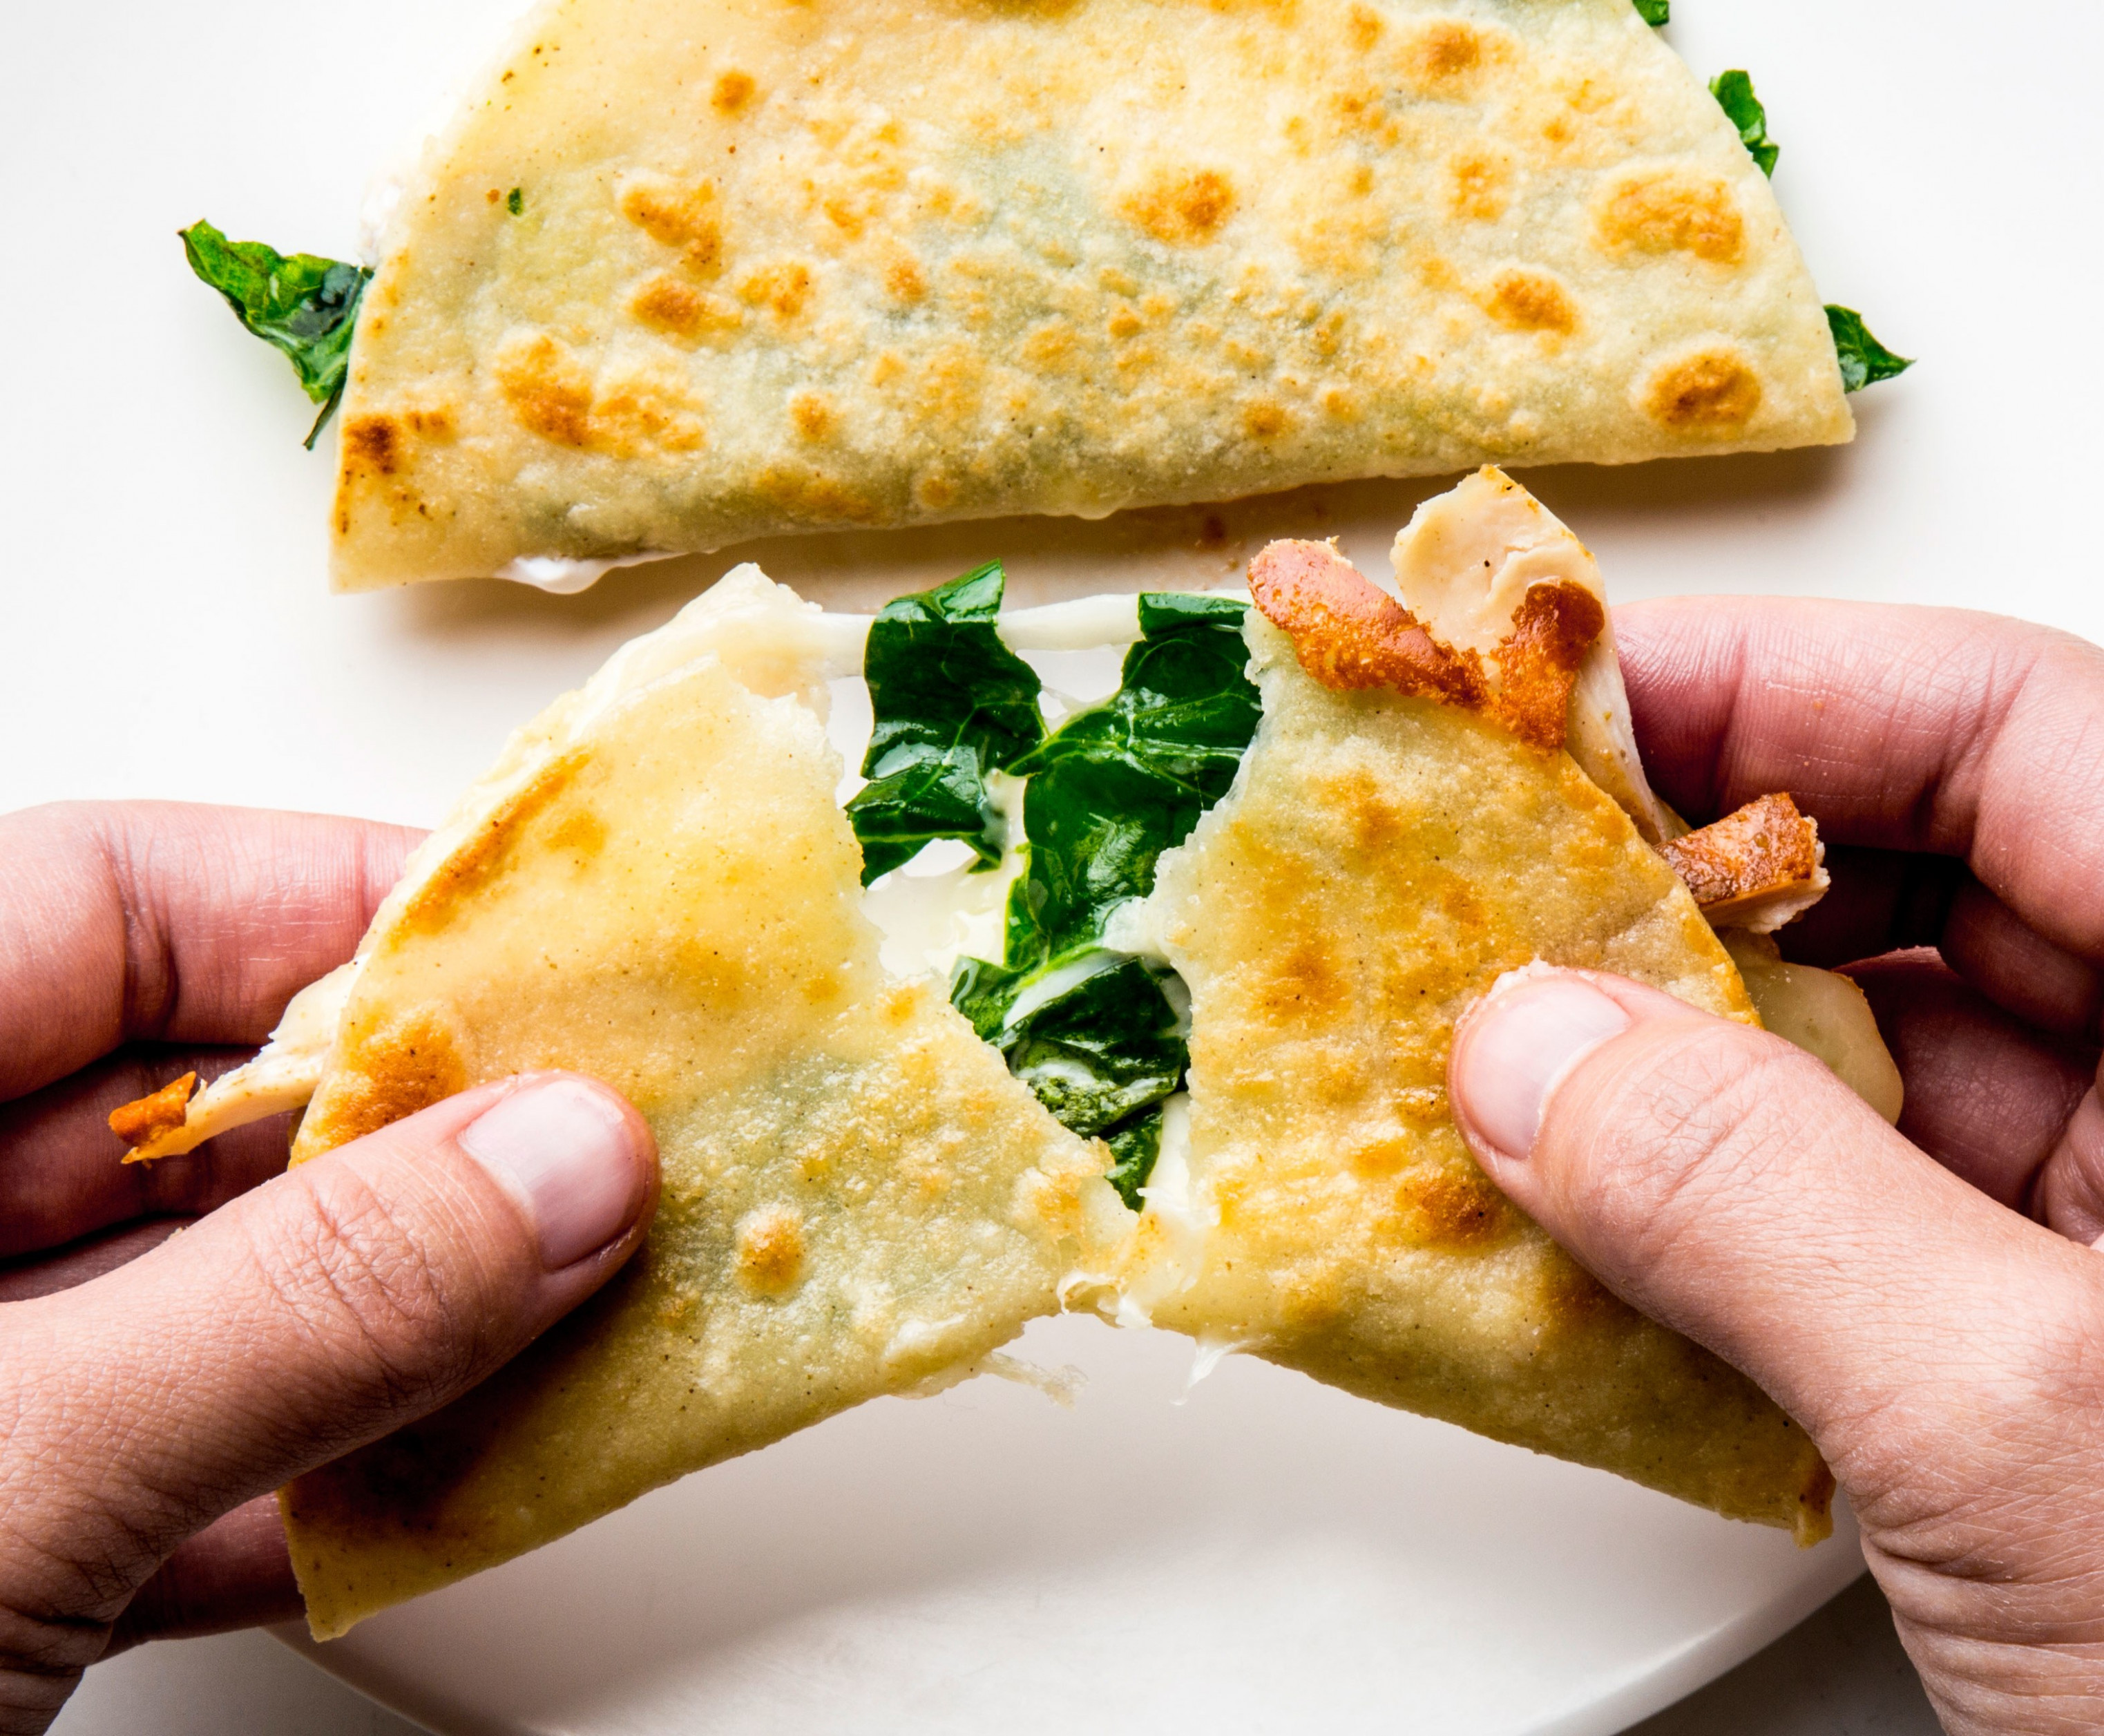 This Quesadilla Is The Most Acceptable Way To Eat Lots Of …